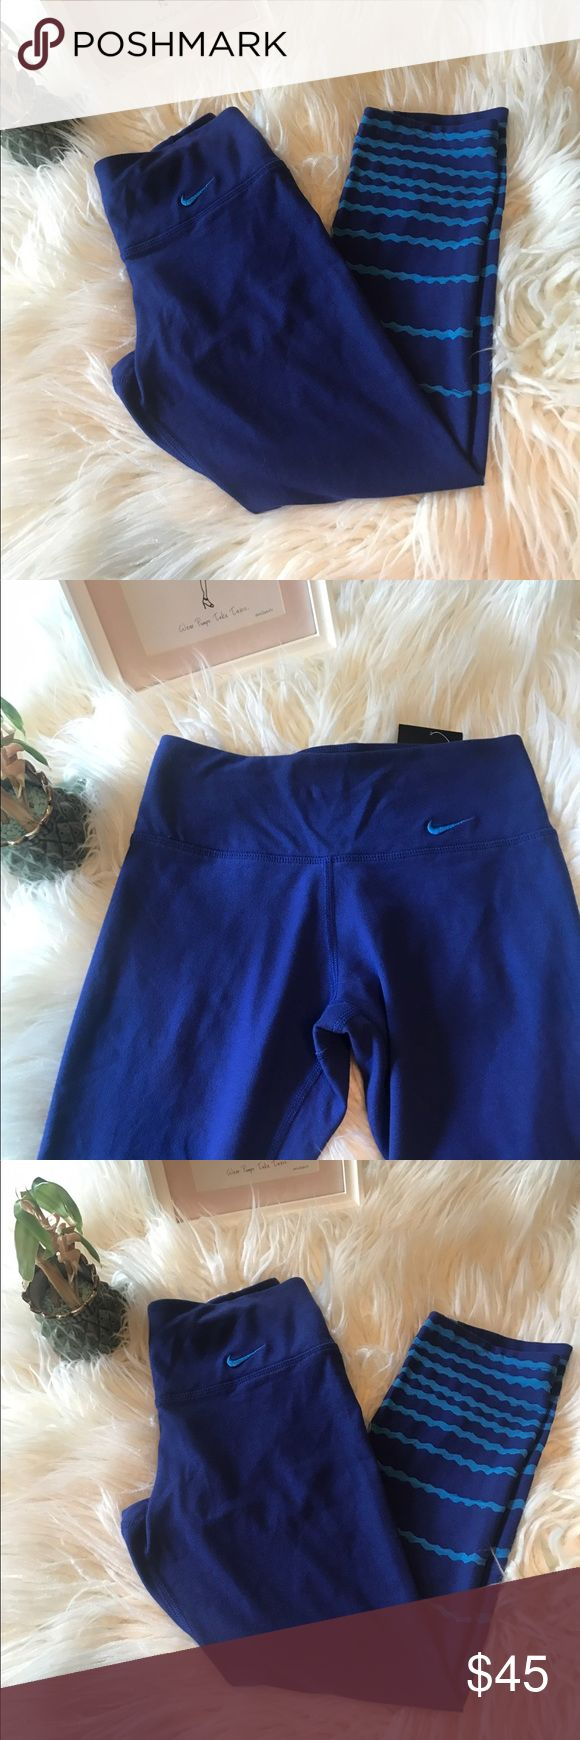 New with tag Nike women's workout capris New with tag Nike women's legend burnout tight fit training capris in blue. Compression fit keeps everything tight to the body for maximum support during high-performance activity. 💙💙 Nike Pants Capris